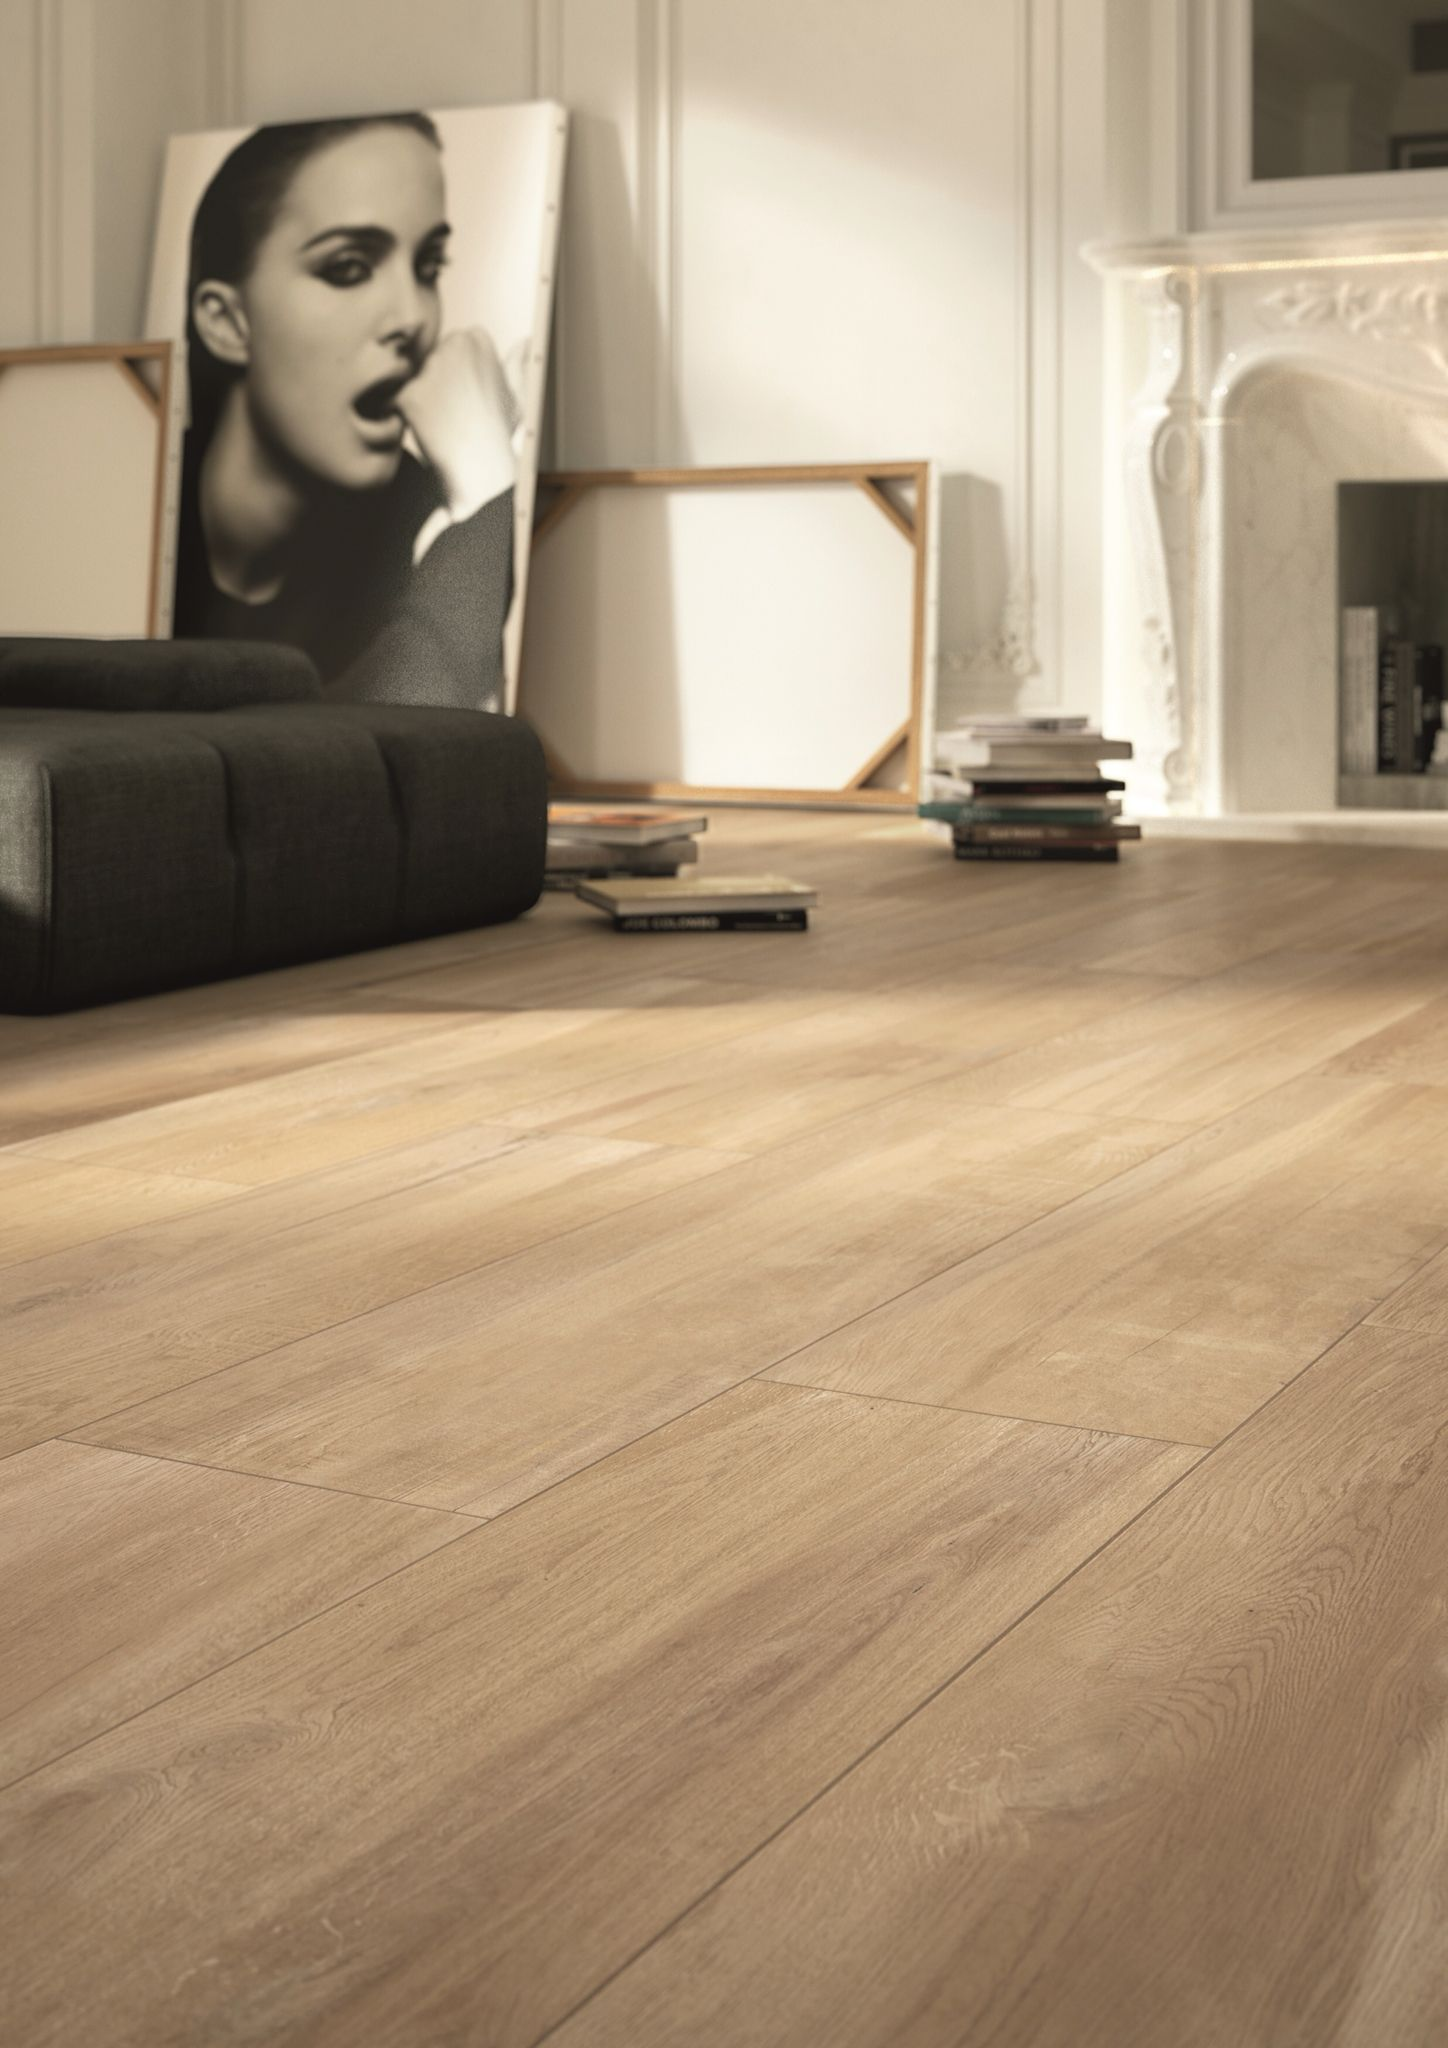 Argenteno Maple Porcelain Planks | Stunning Wood Effect Tiles | 5 Beautiful  Shades And Very Practical